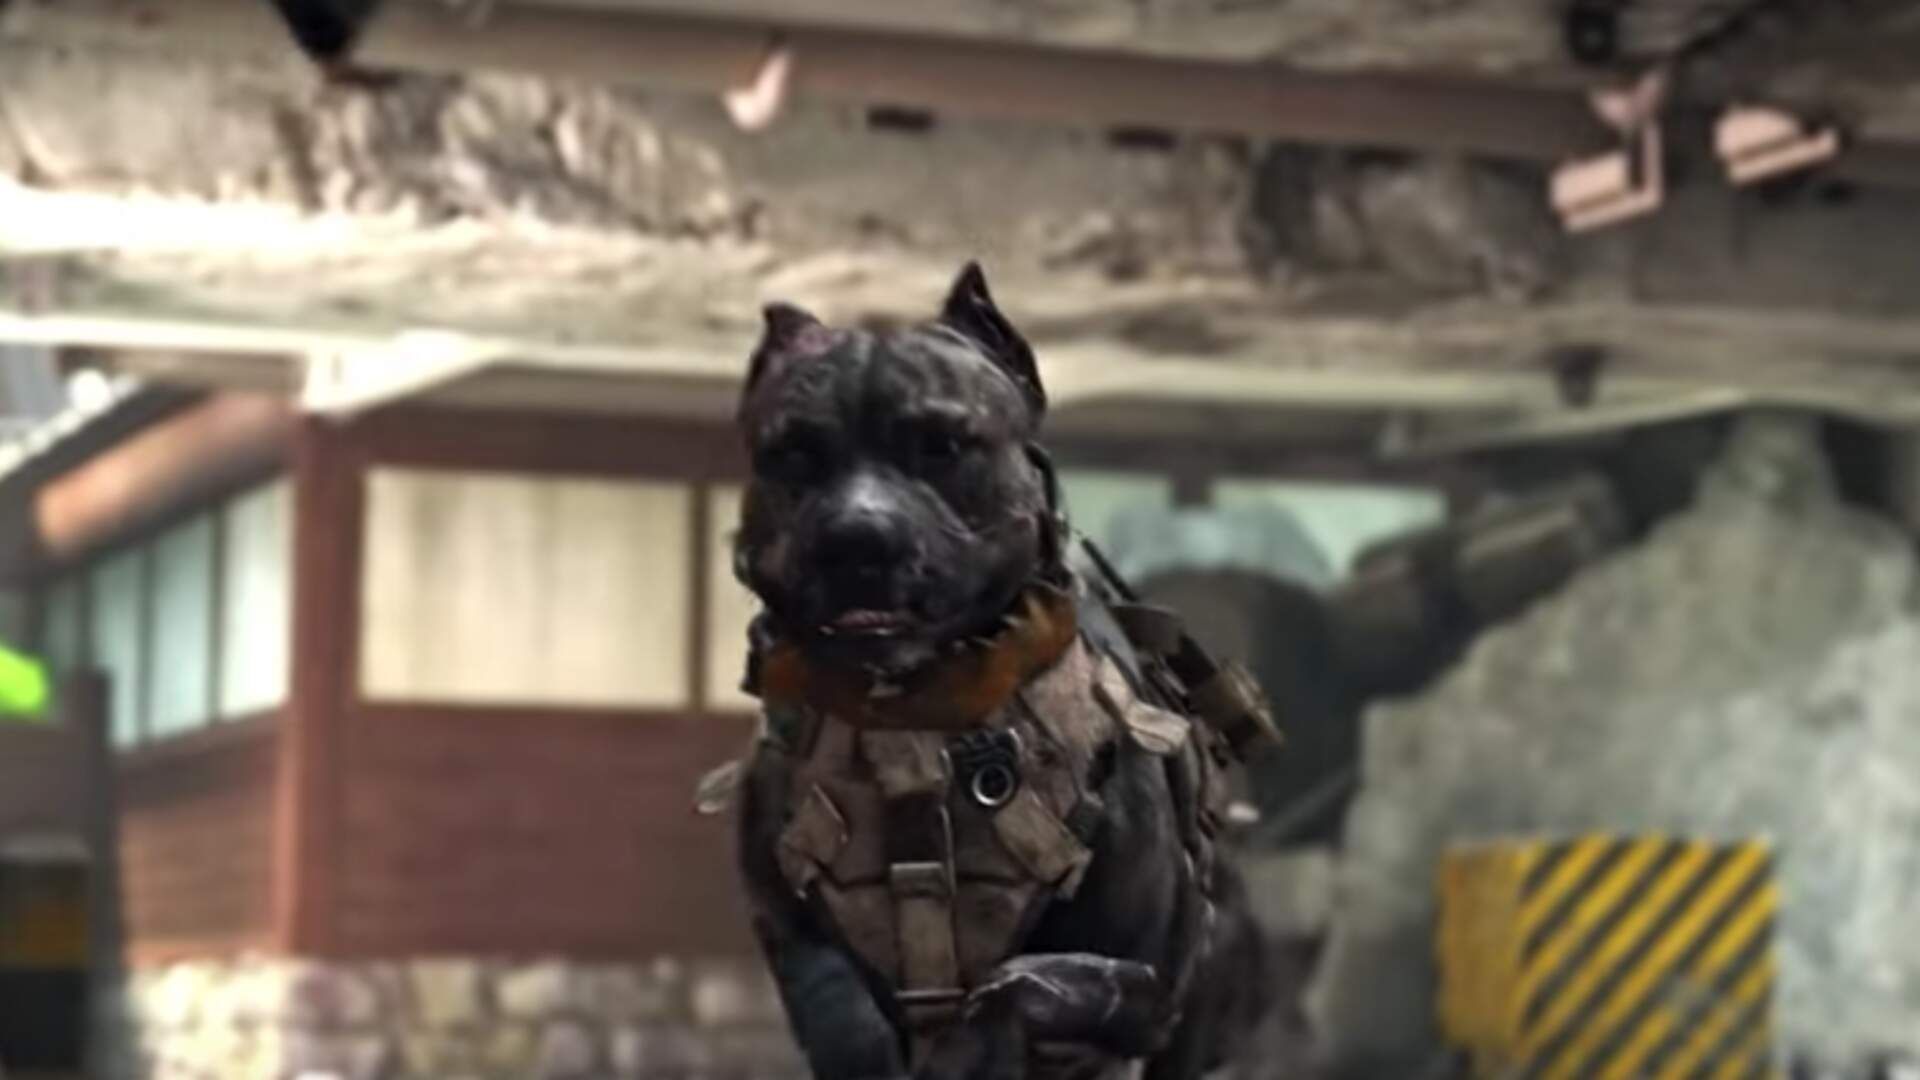 Call of Duty: Black Ops 4's Dogs Are Still Tormenting Players